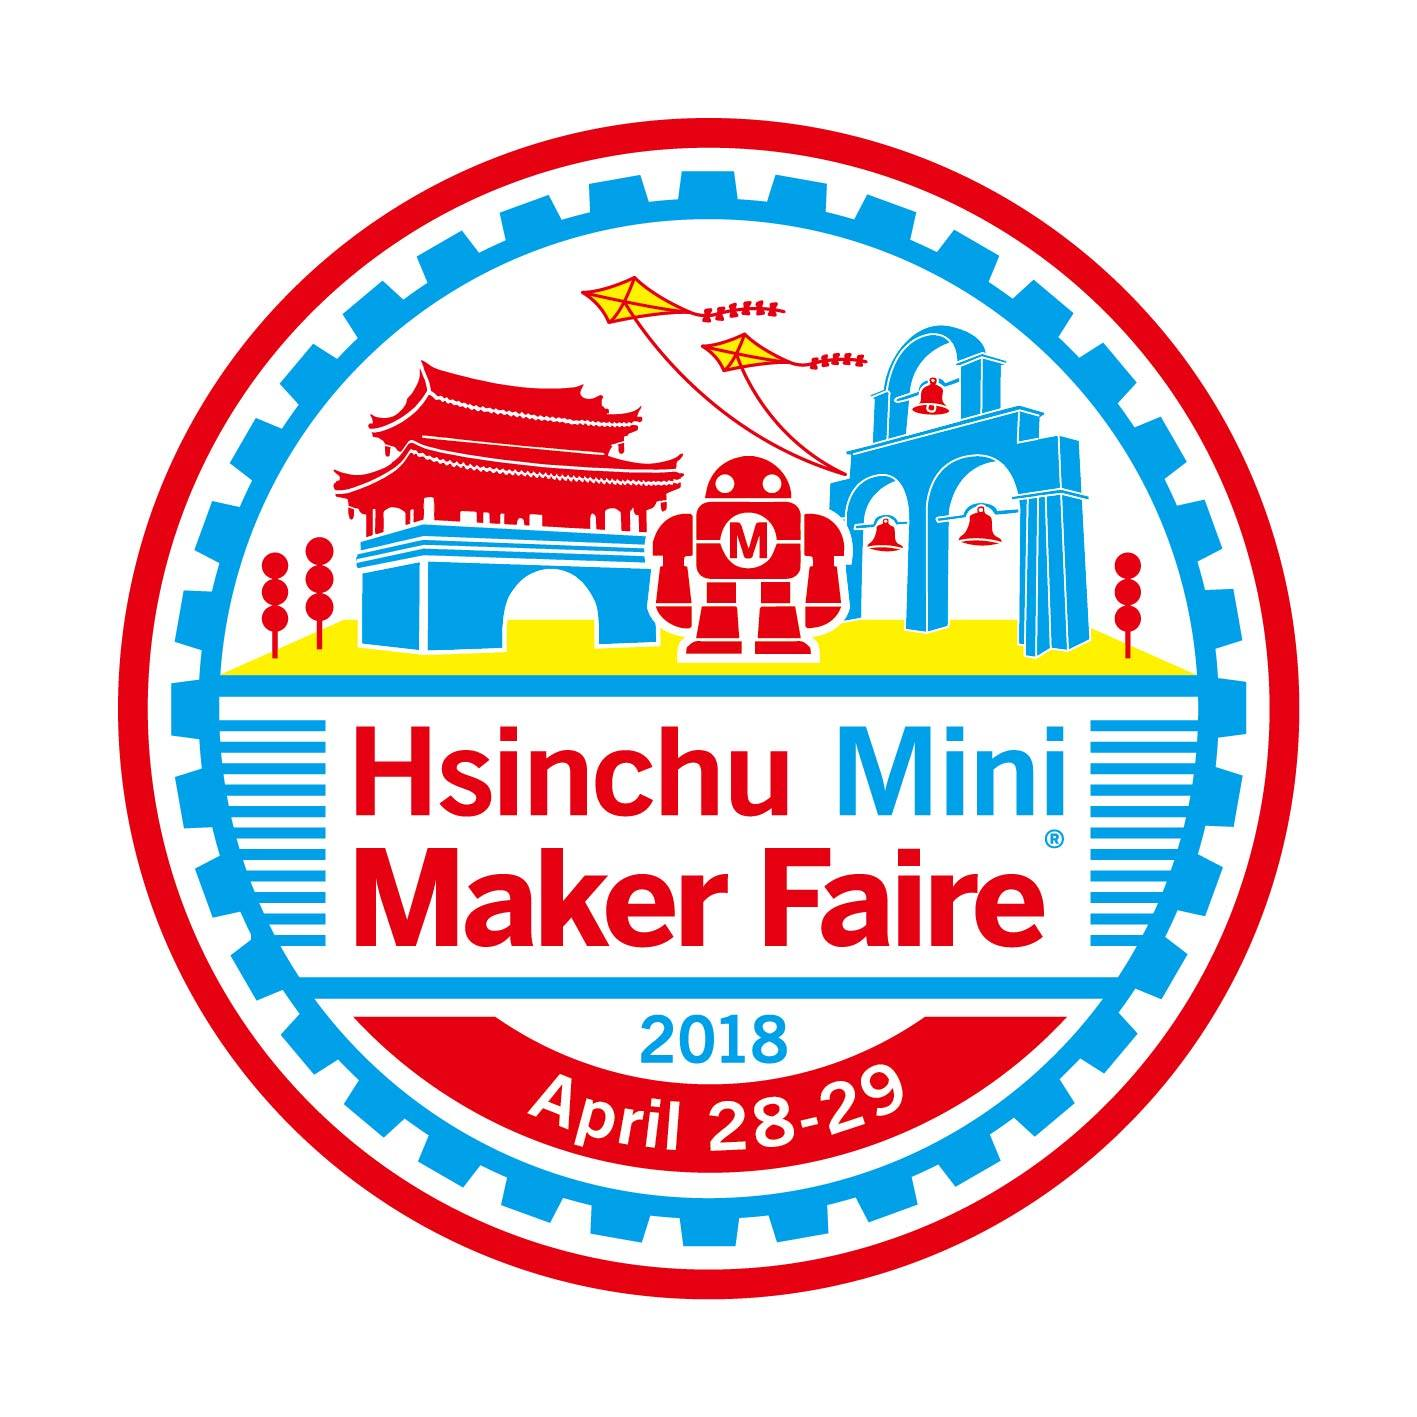 Hsinchu Mini Maker Faire